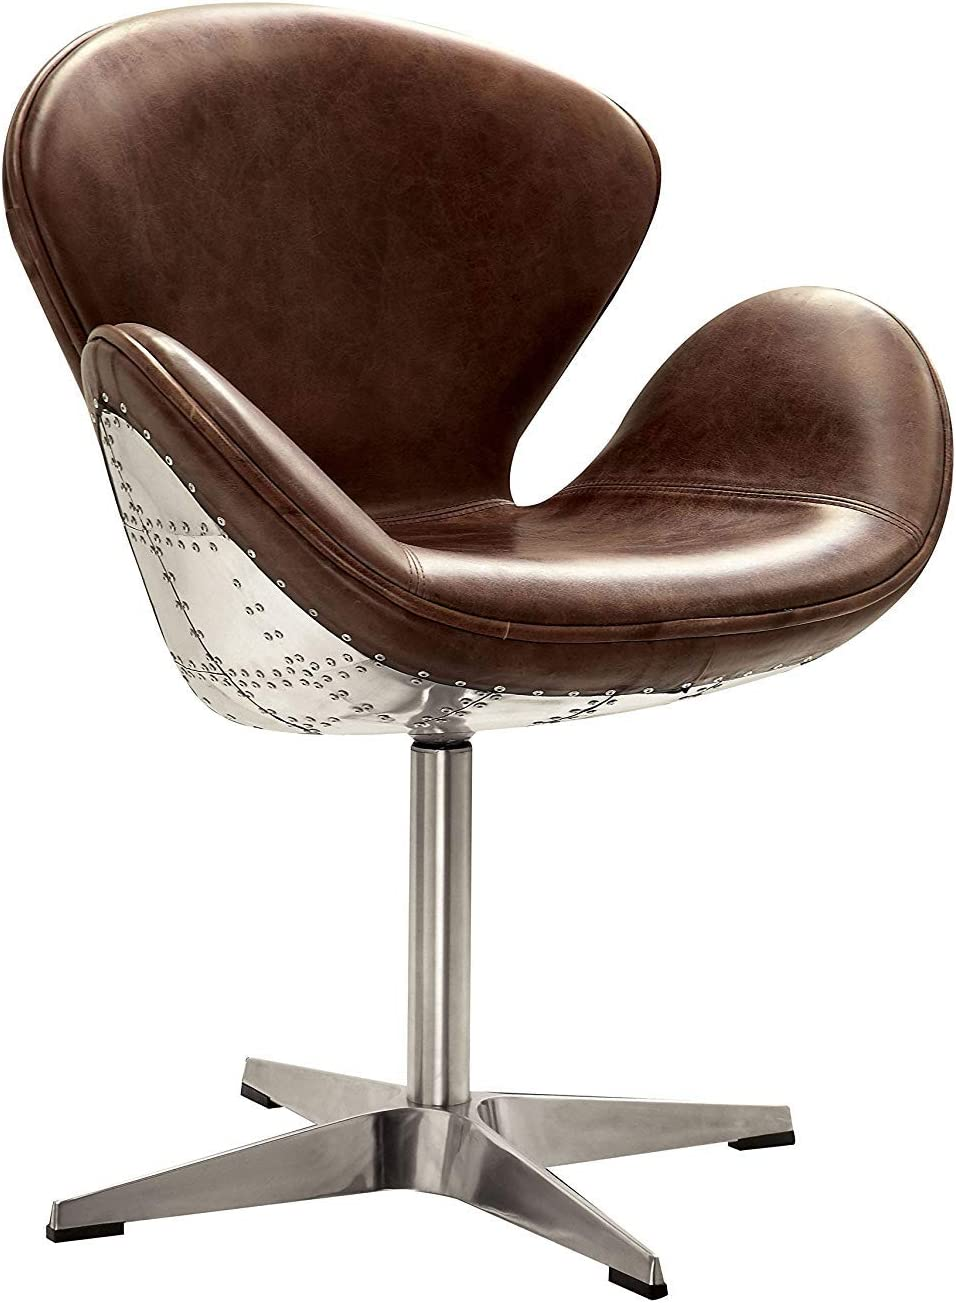 ACME Furniture 96553 Brancaster Swivel Chair, Retro Brown Top Grain Leather/Aluminum